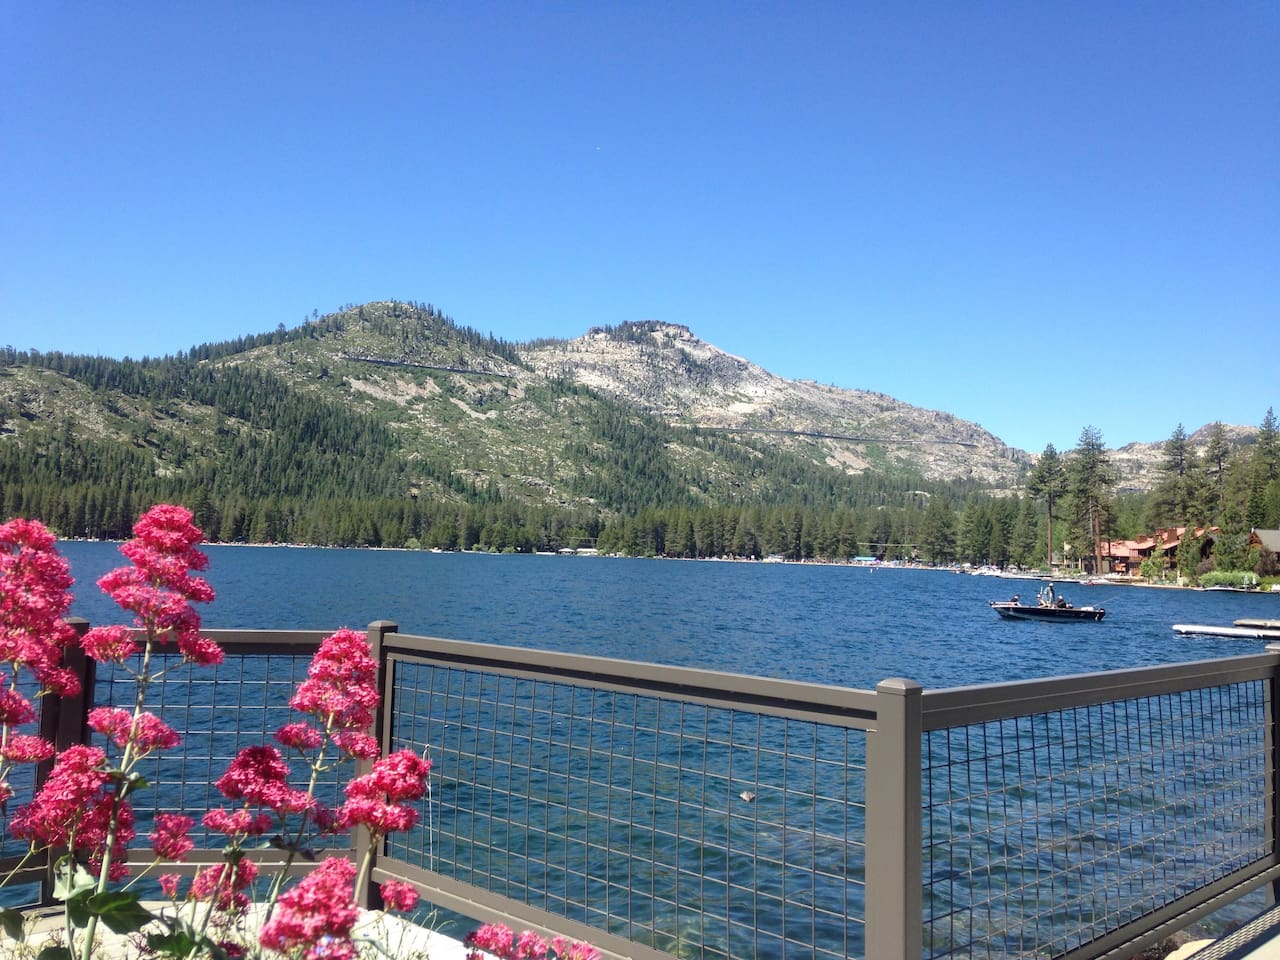 This is a picture from Donner Lake boat launch! Just 7 minutes (3.5 miles) away from the suite!